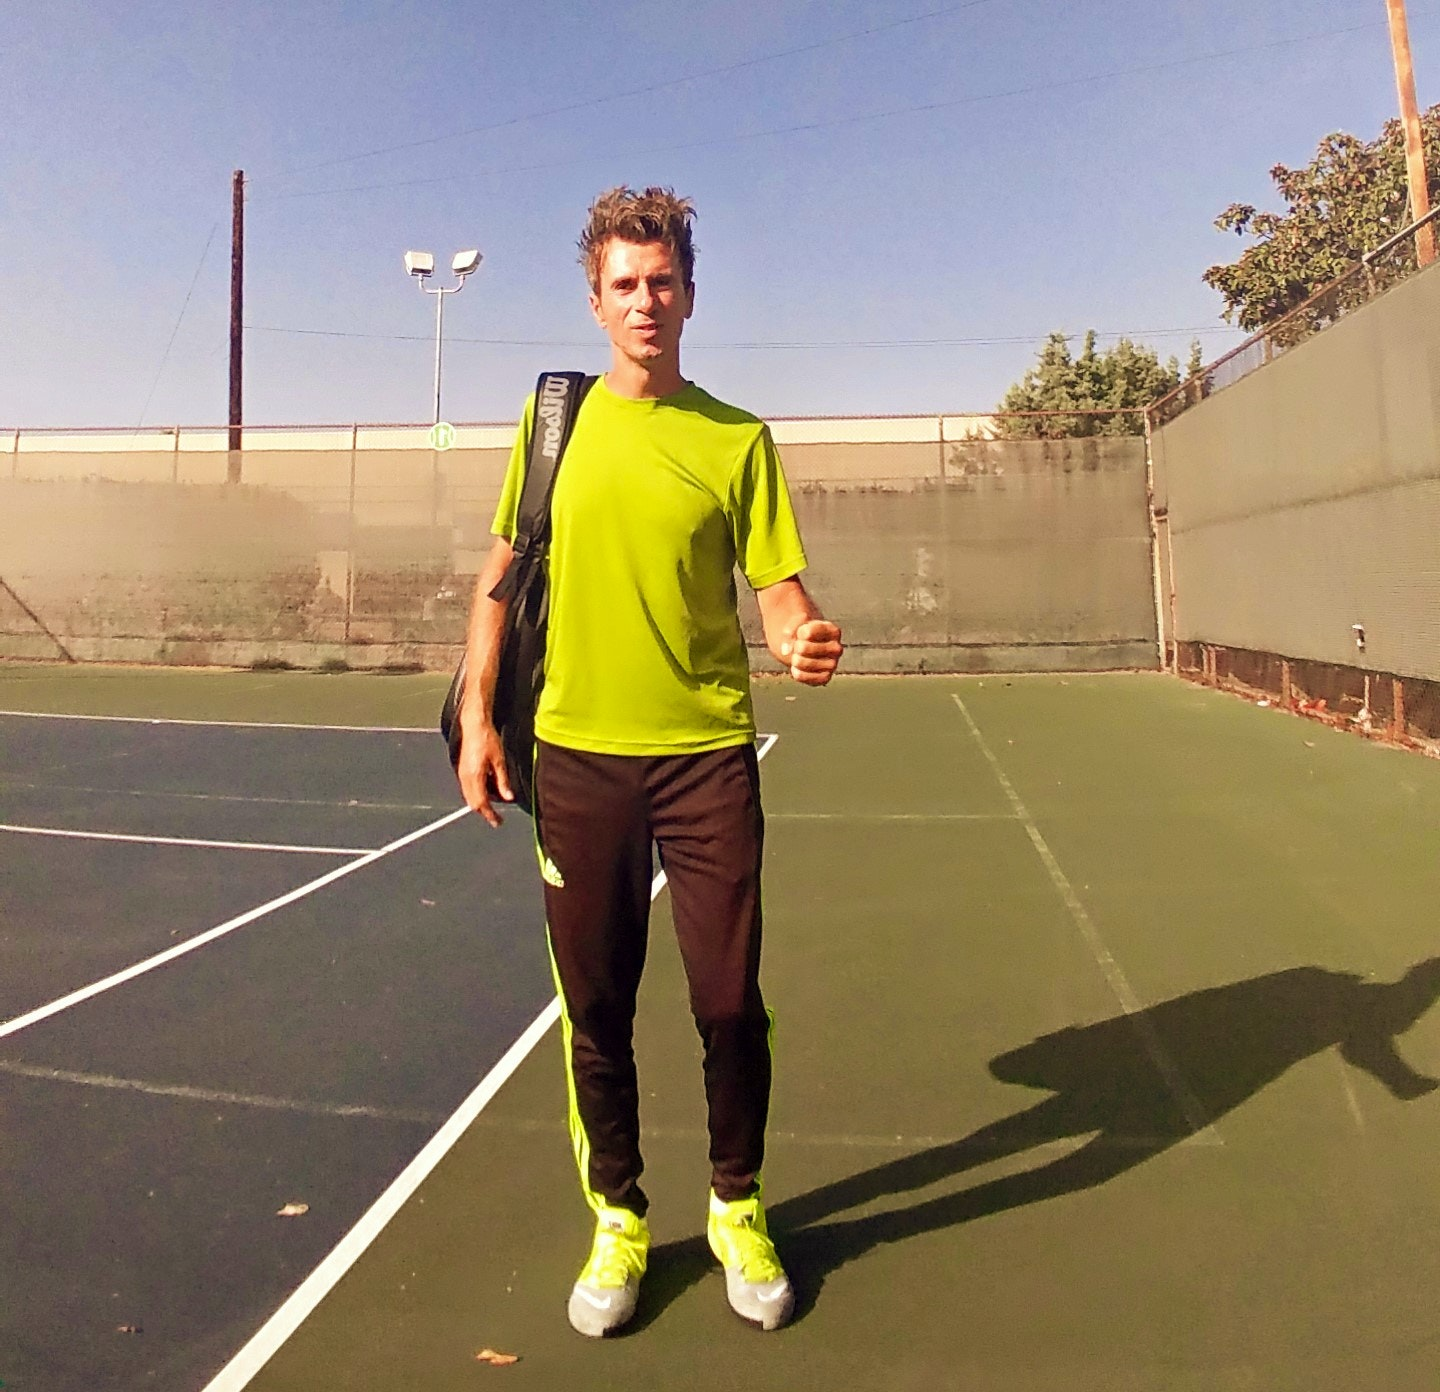 Ilya S. teaches tennis lessons in Los Angeles, CA